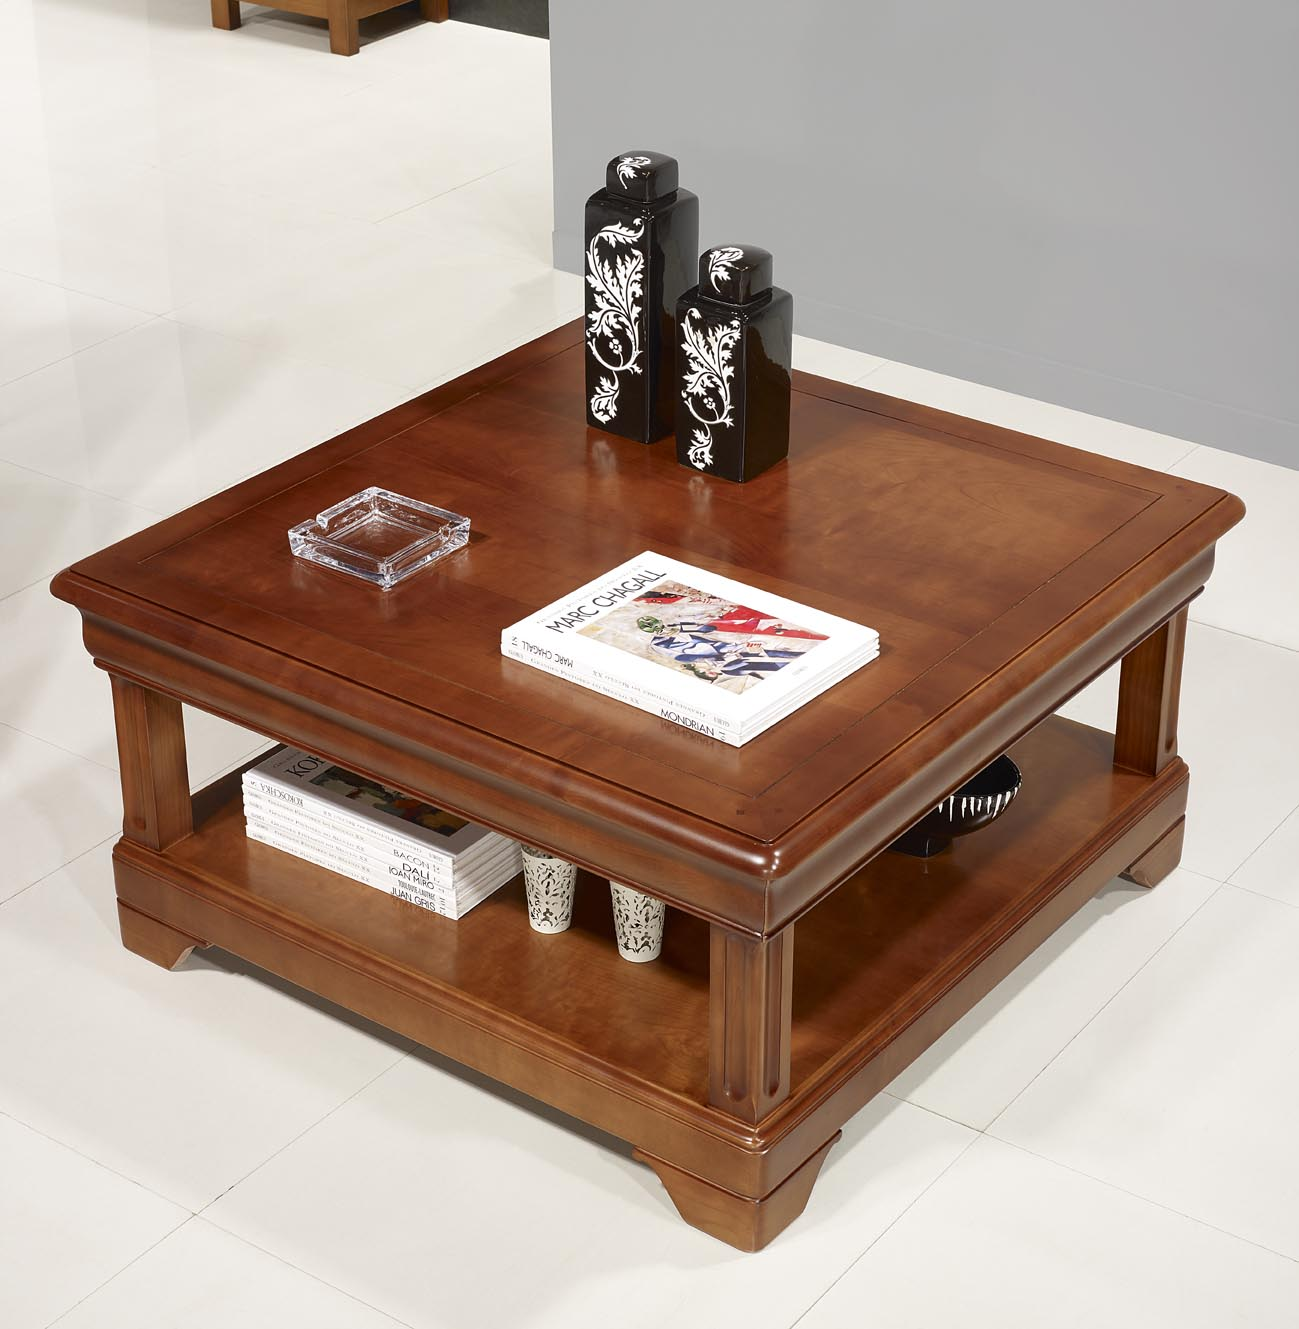 Table basse carr e en merisier de style louis philippe meuble en merisier - Table basse merisier ...